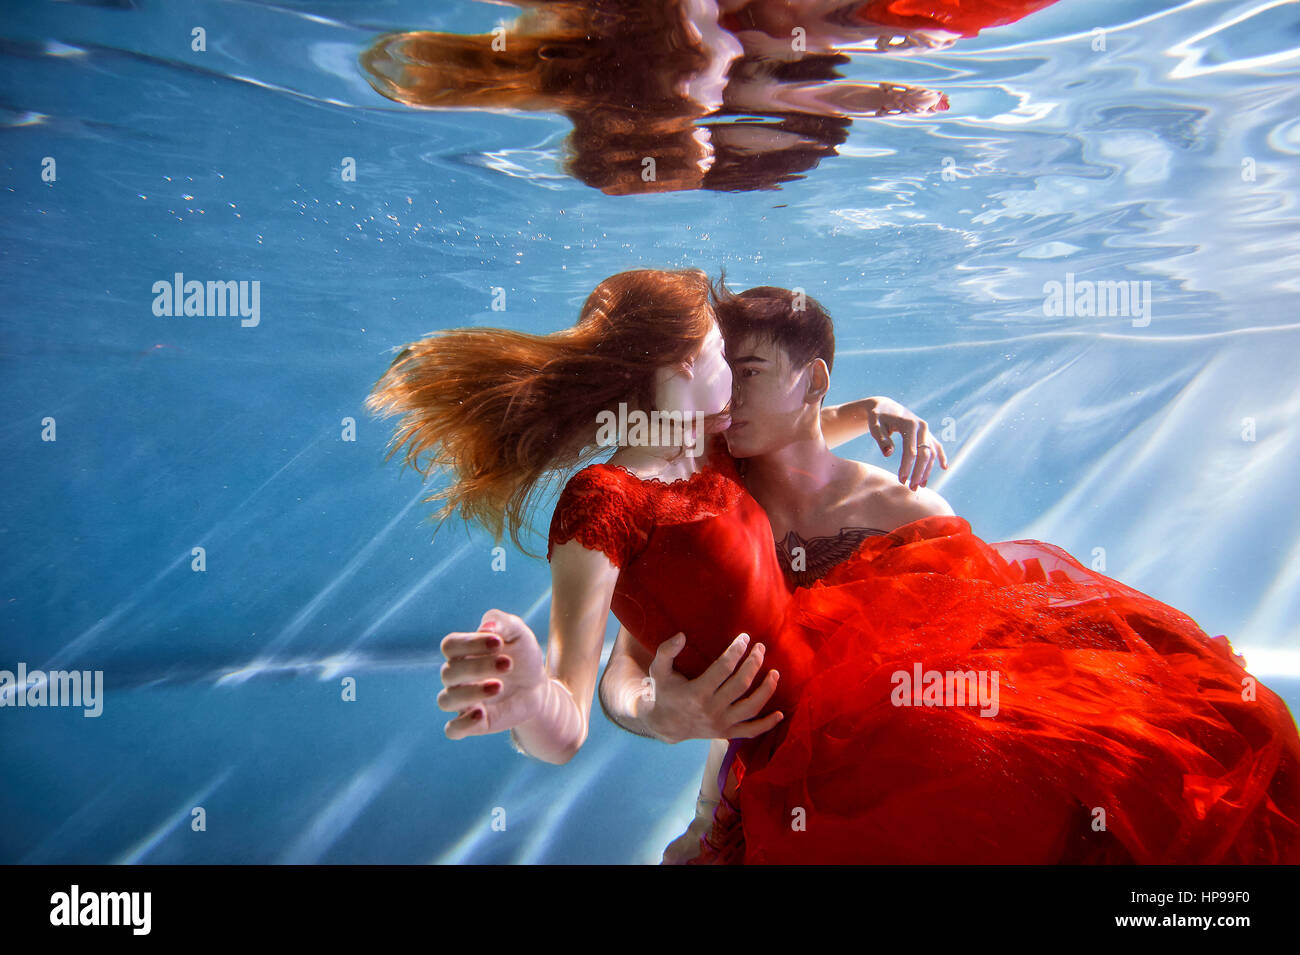 Stock Photo   Underwater In The Pool With The Purest Water. Loving Couple  Hugging. The Feeling Of Love And Closeness. Soft Focus